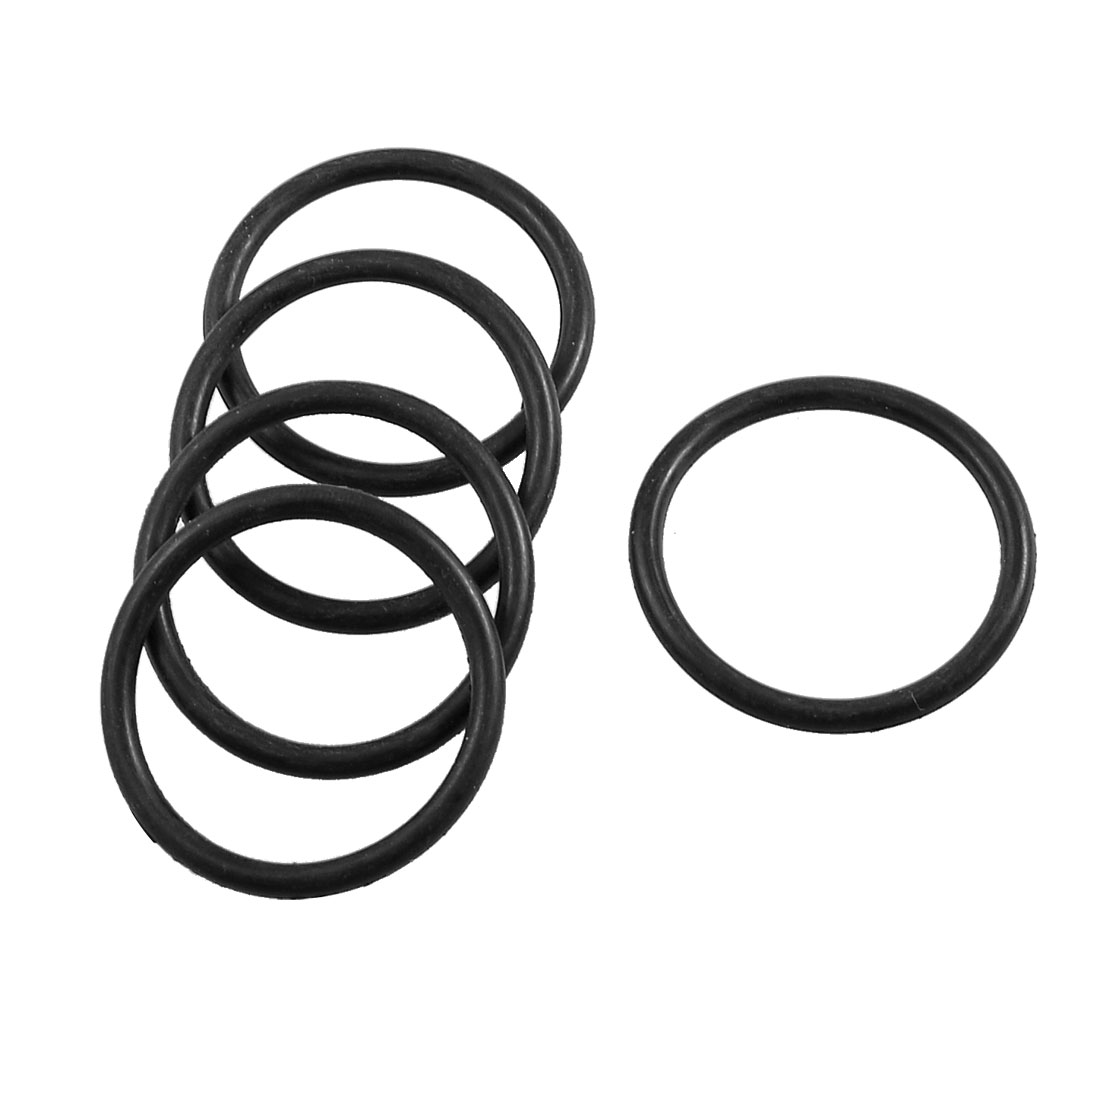 5 Pcs Mechanical Rubber Sealing Oil Filter O Rings Gaskets 41mm x 34mm x 3.5mm